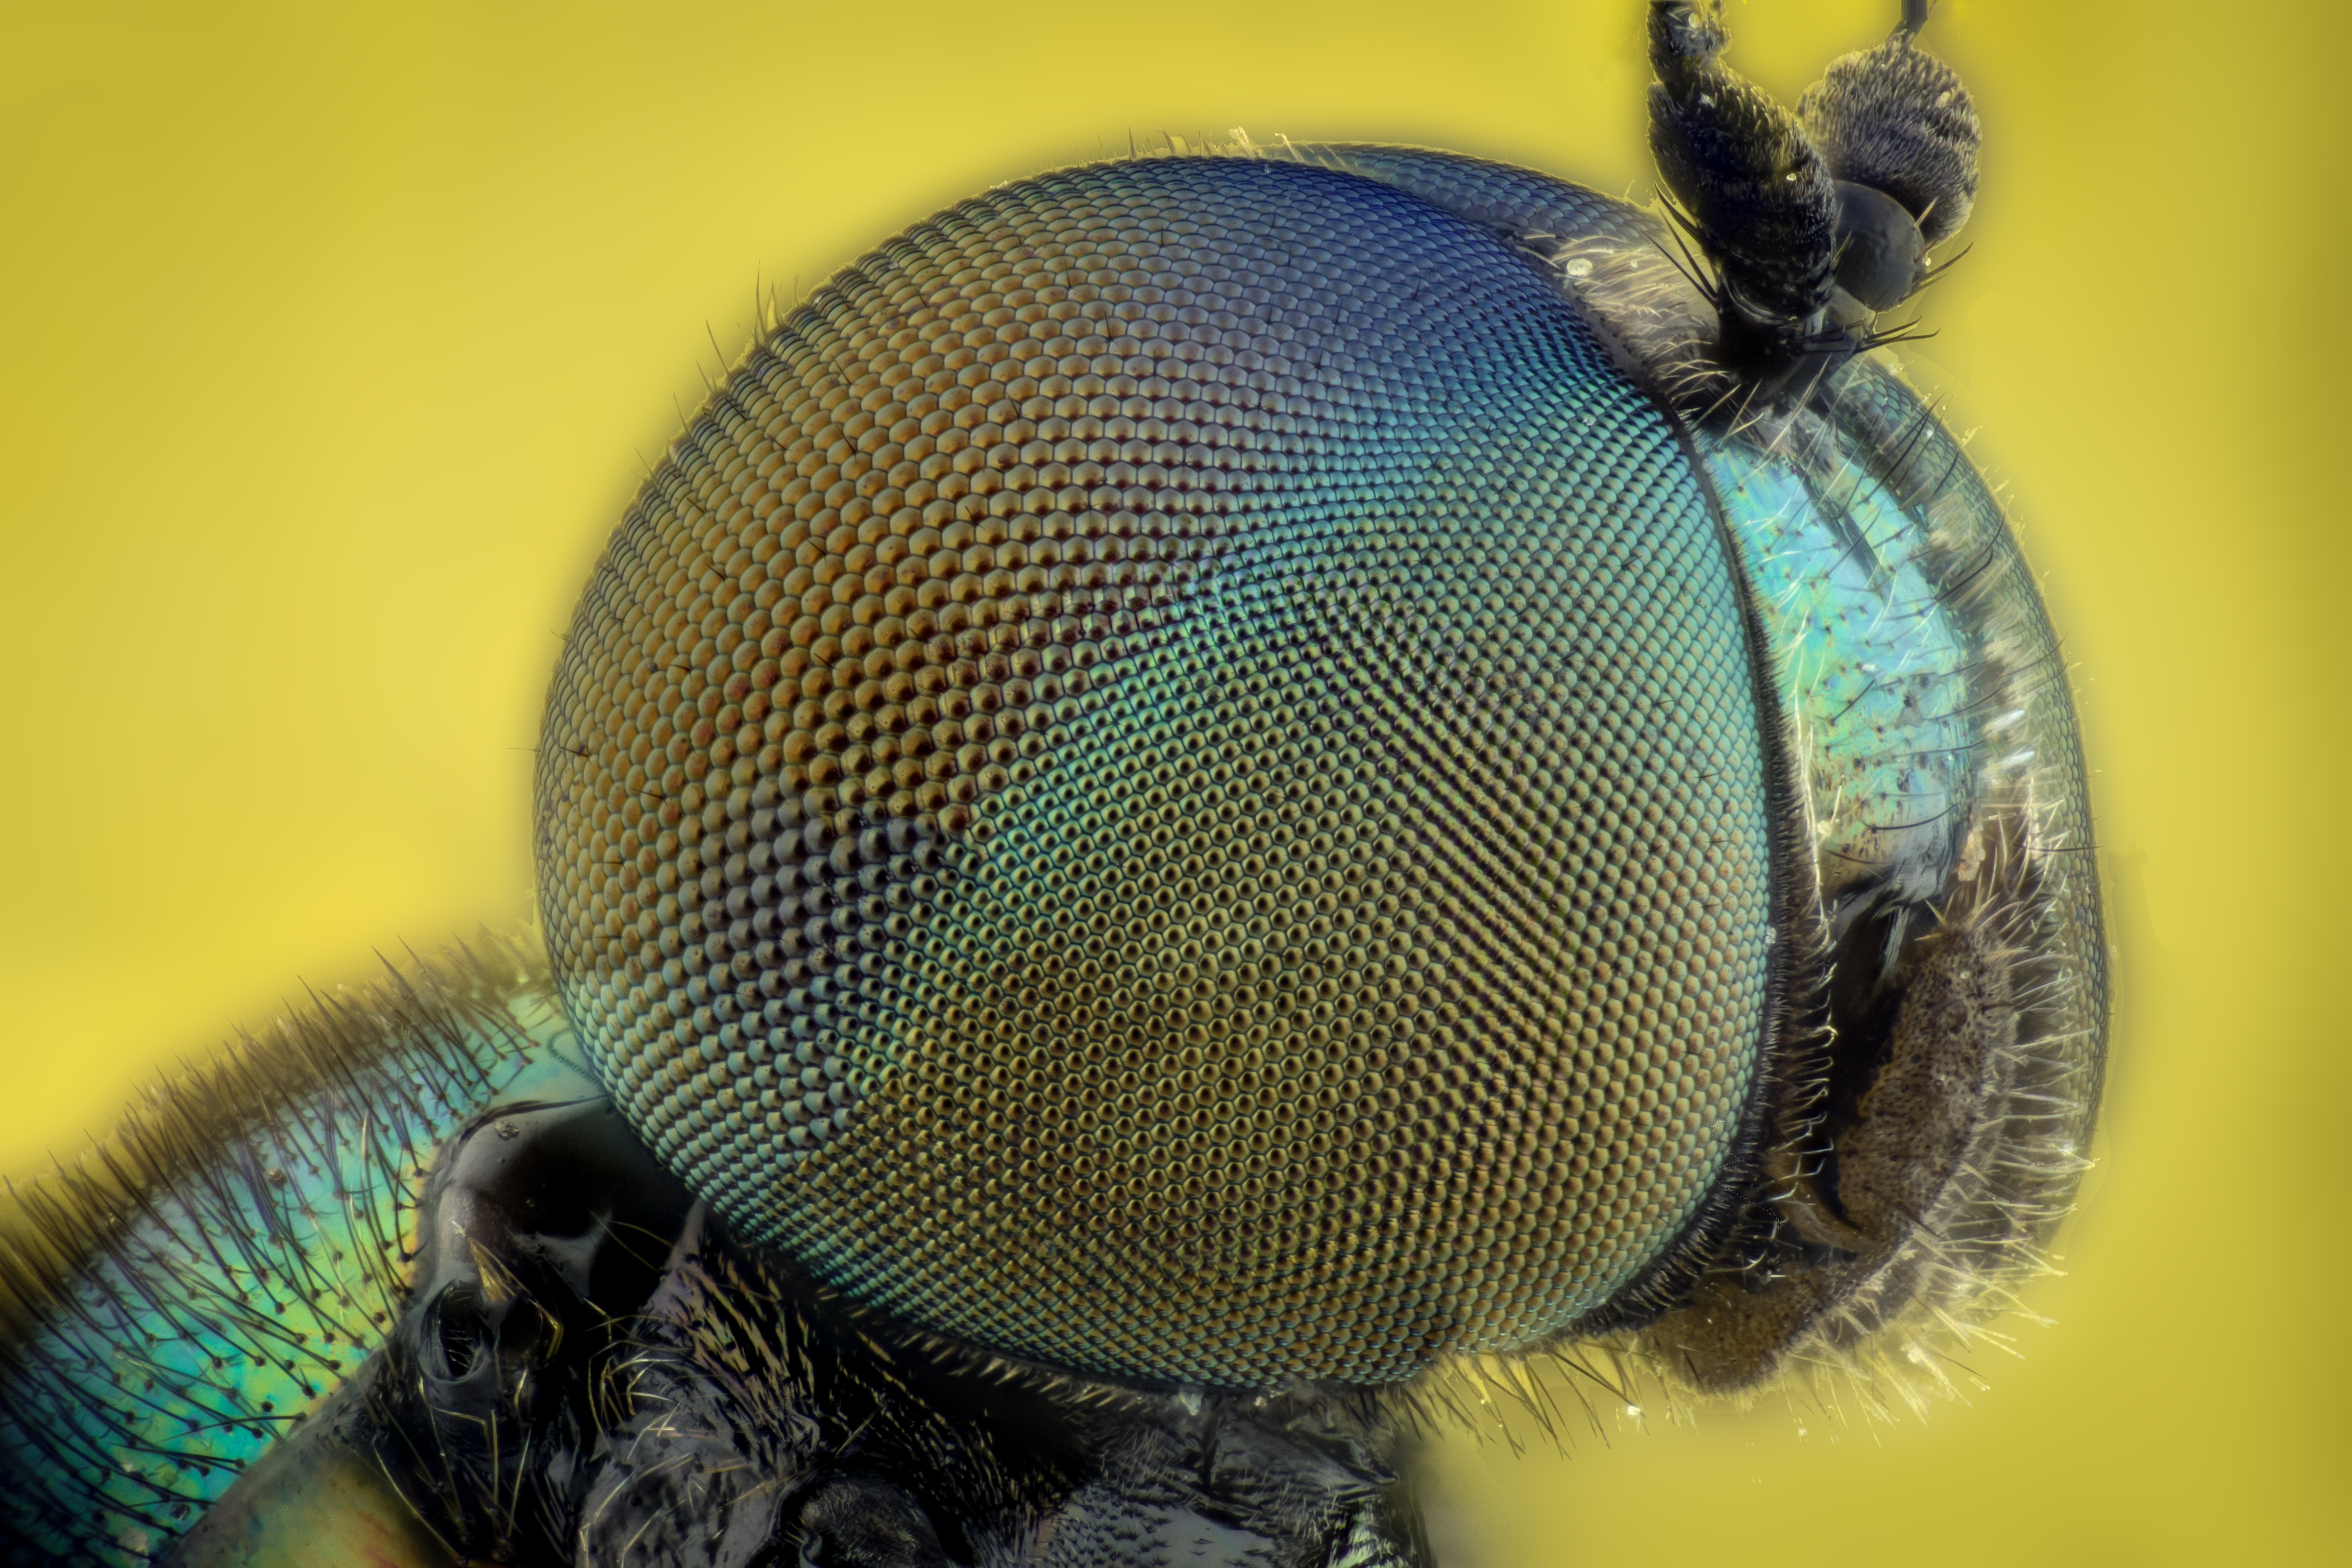 Iphone X Wallpaper Stock Hd Free Stock Photo Of Bug Colors Eyes